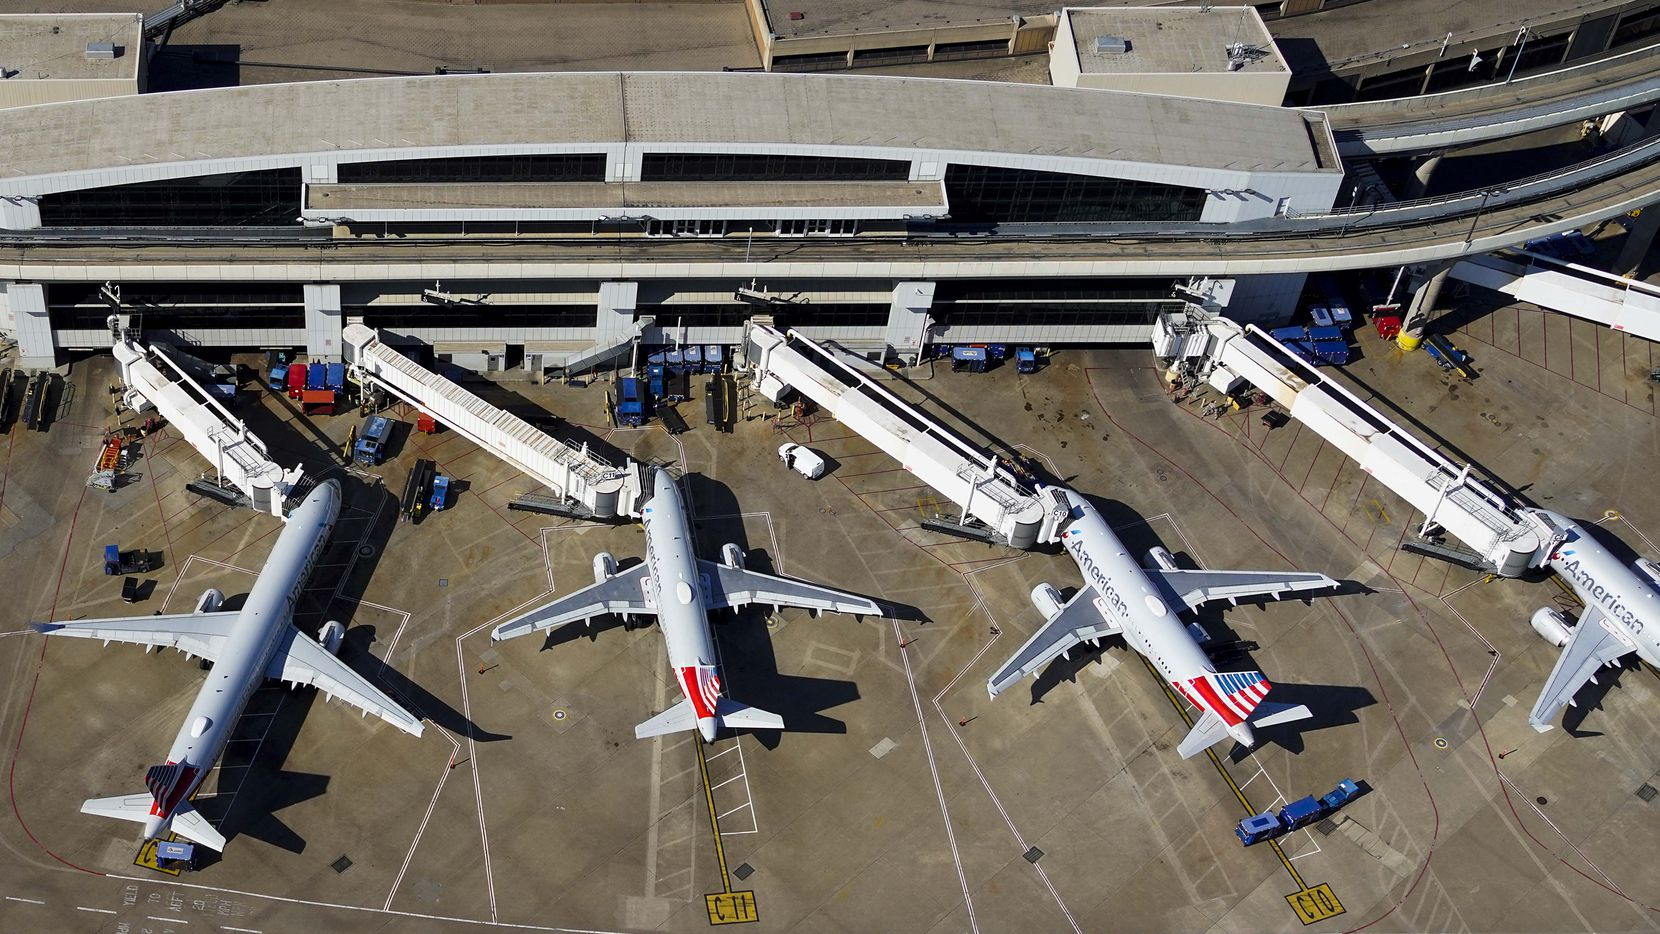 Aerial view of American Airlines aircraft at the gates of Terminal C at Dallas Fort Worth (DFW) International Airport on Thursday, April 16, 2020.